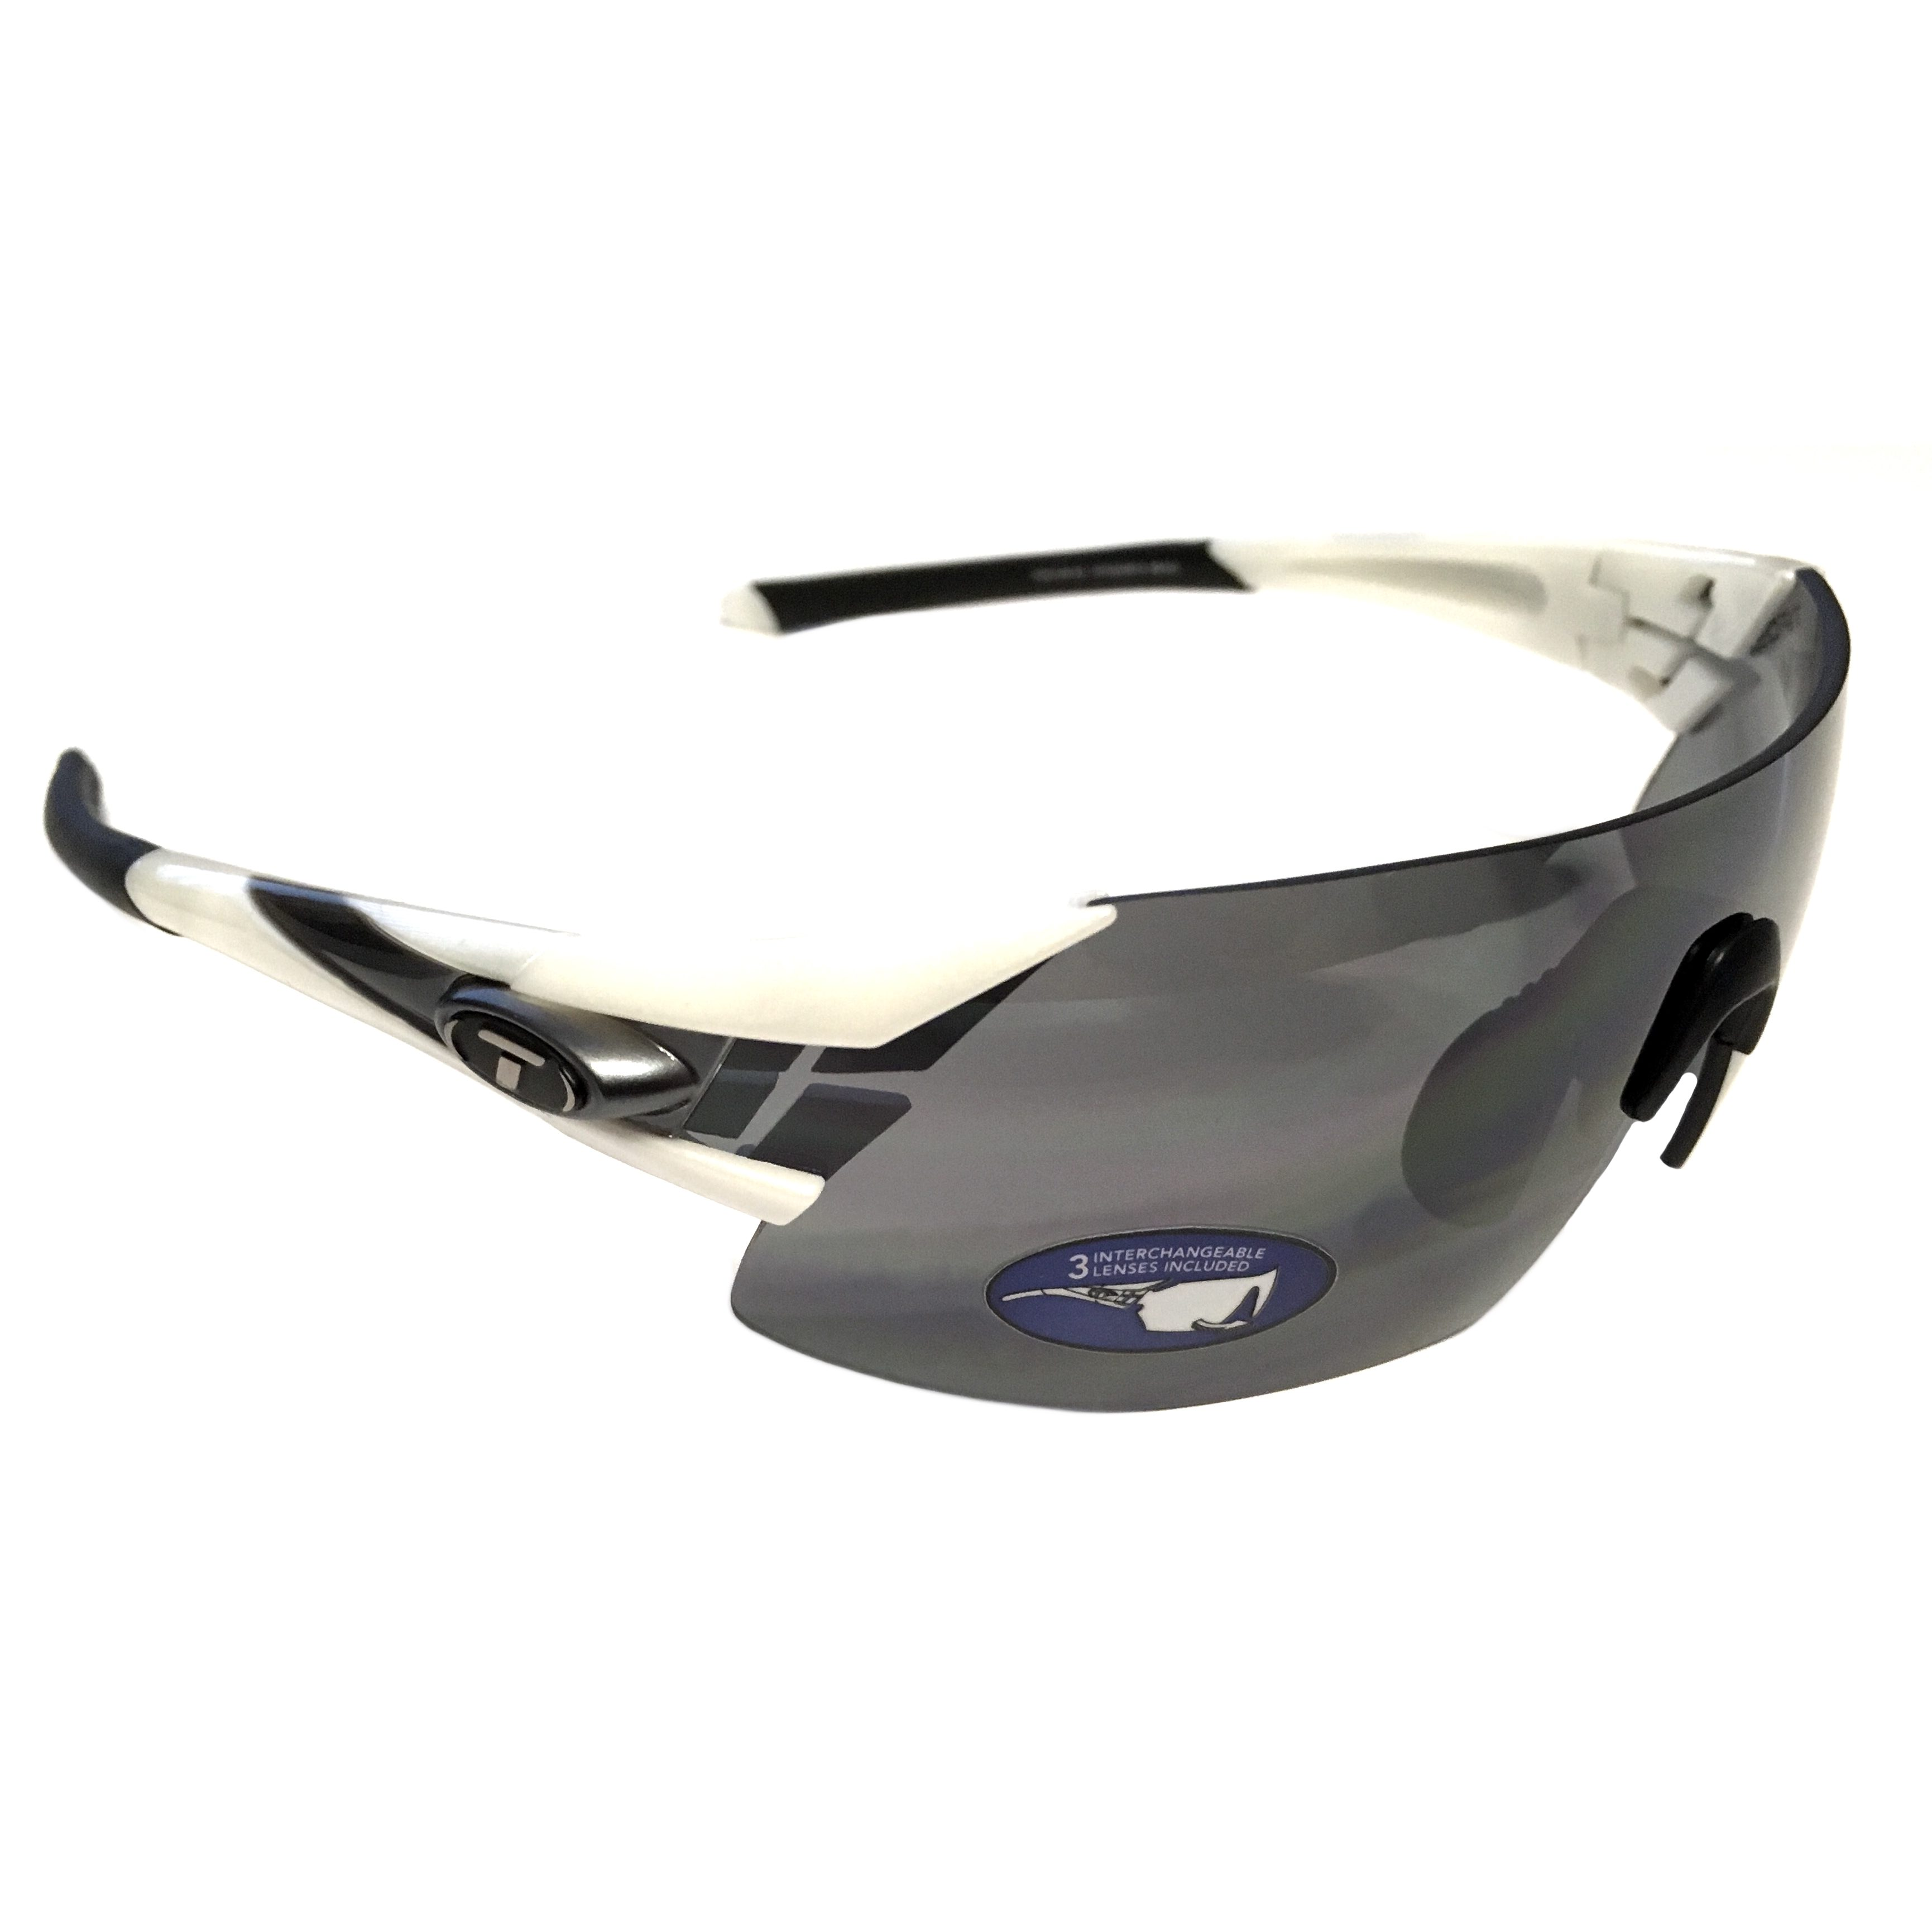 8f1536f8b0 Tifosi Optics Podium XC Sunglasses - White   Gunmetal - Smoke +XTRA Lenses